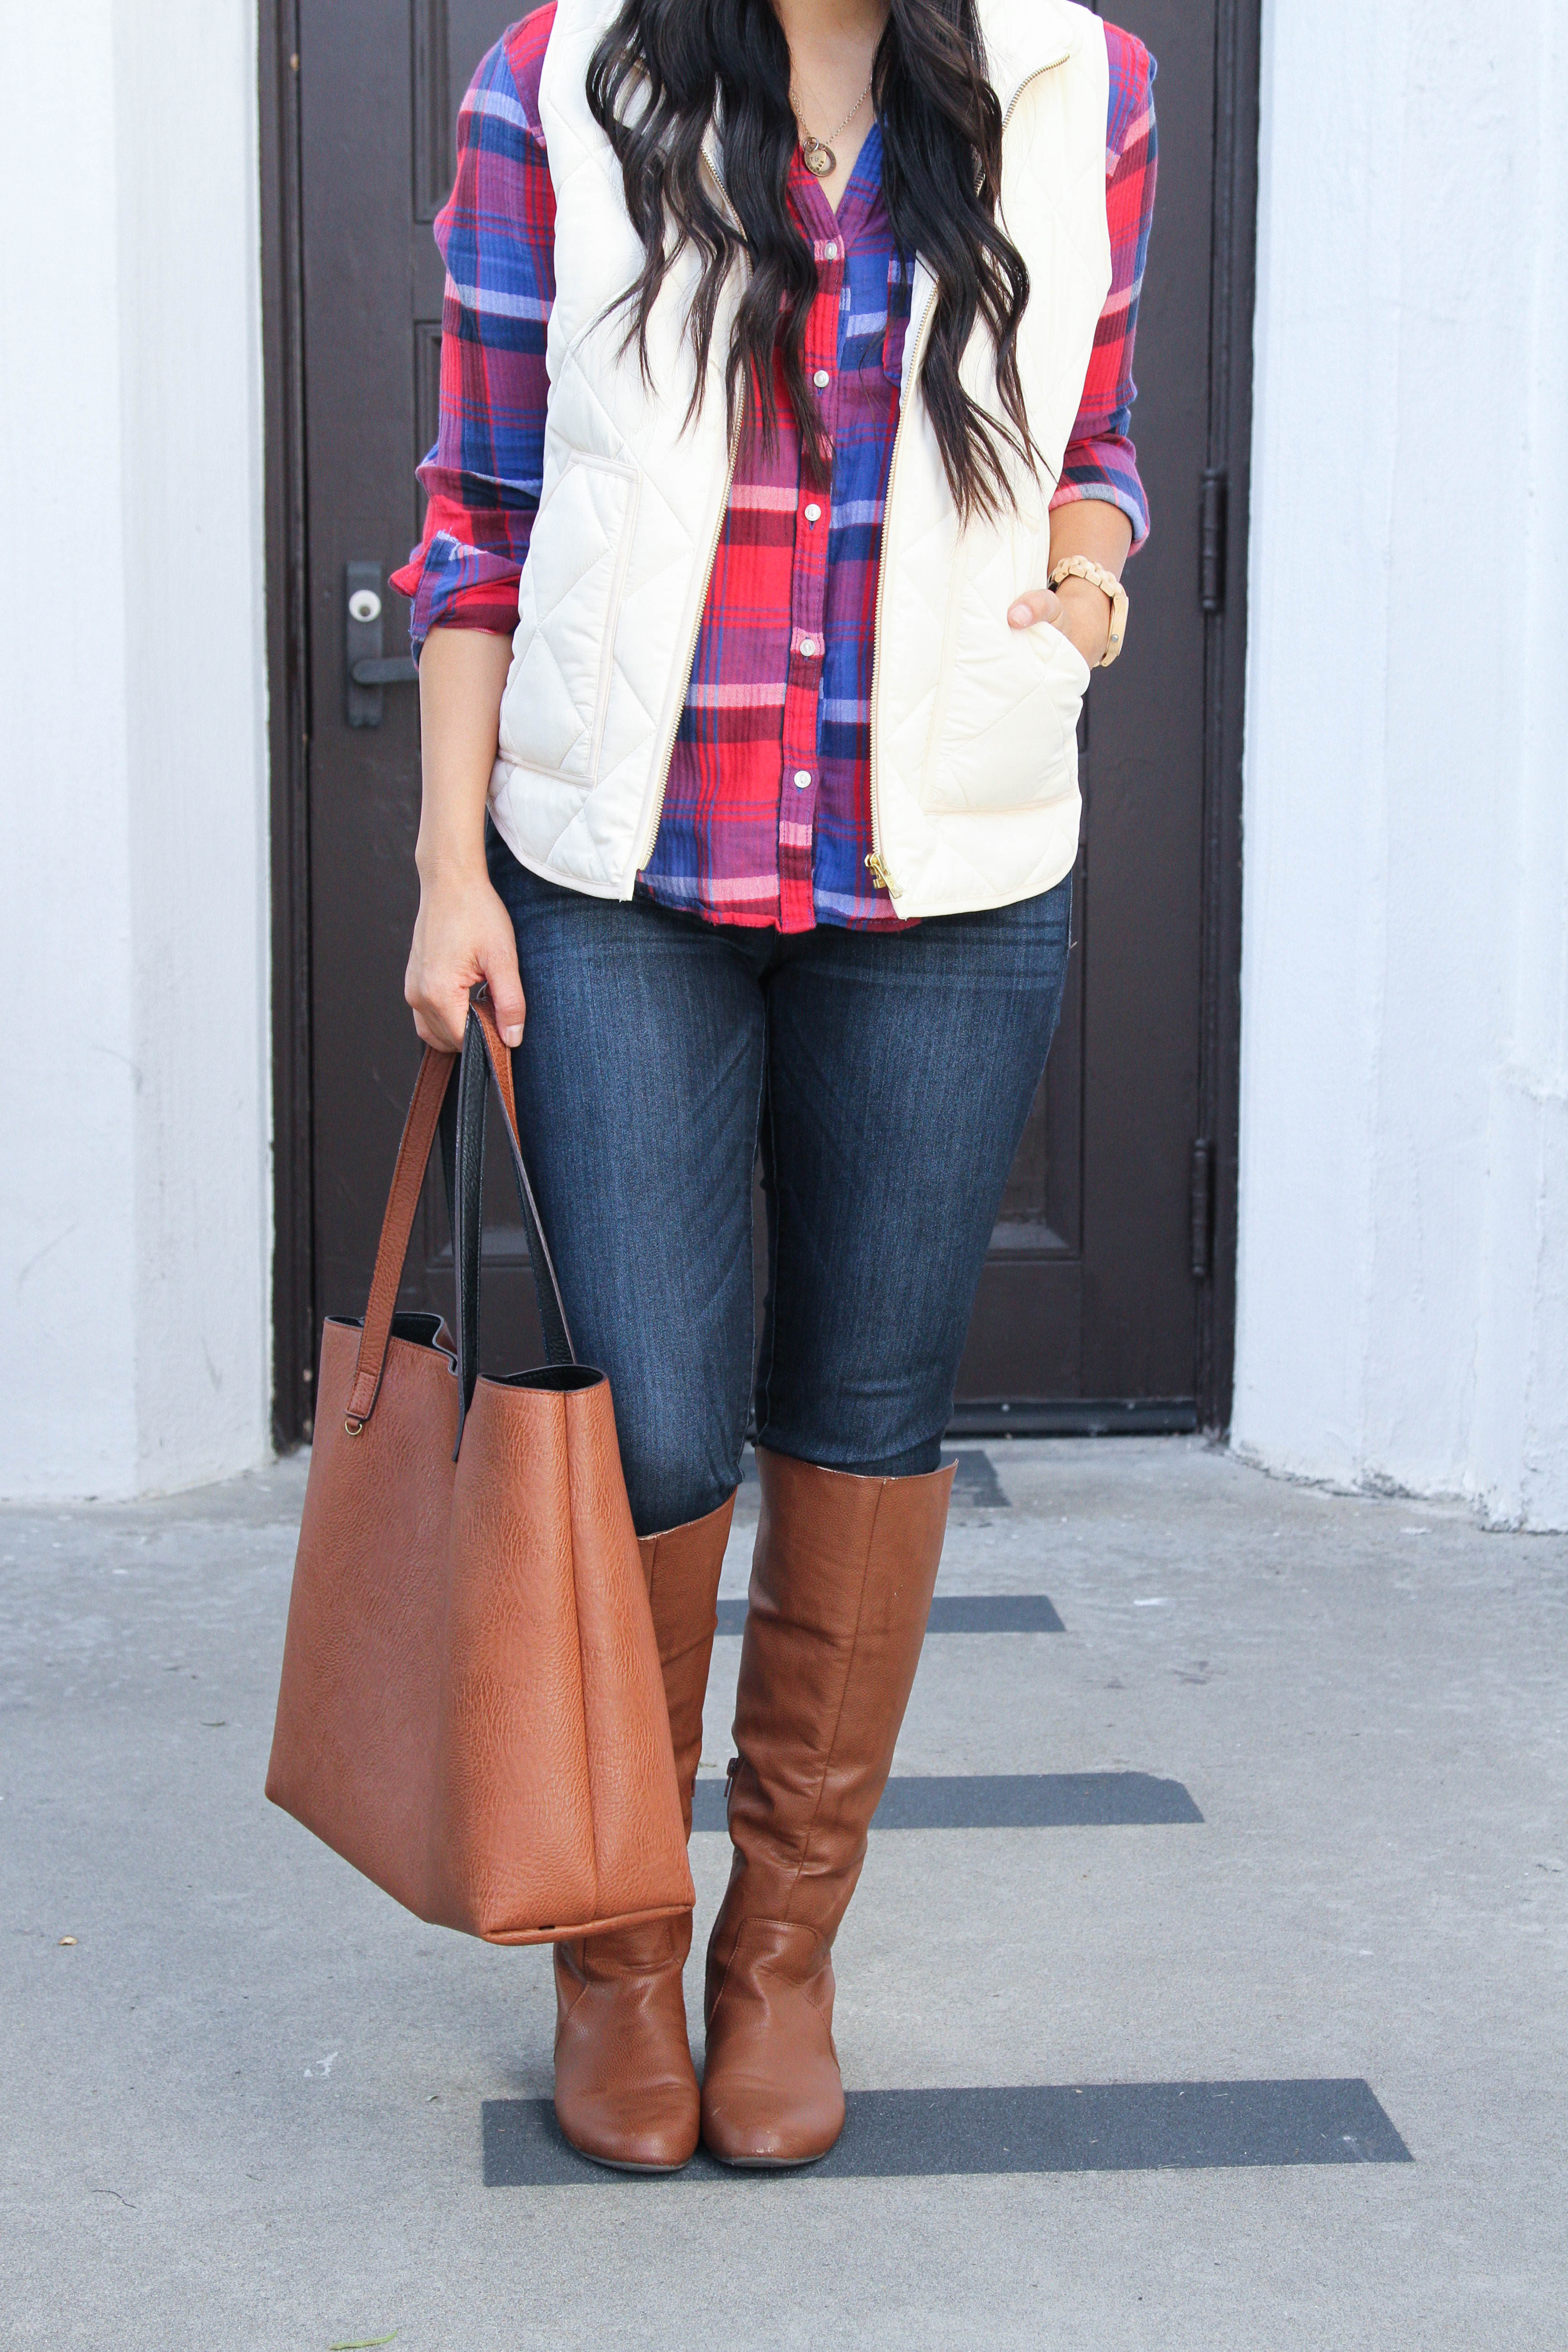 Riding Boots + Skinnies + Cognac Tote + Red Plaid shirt + White Vest